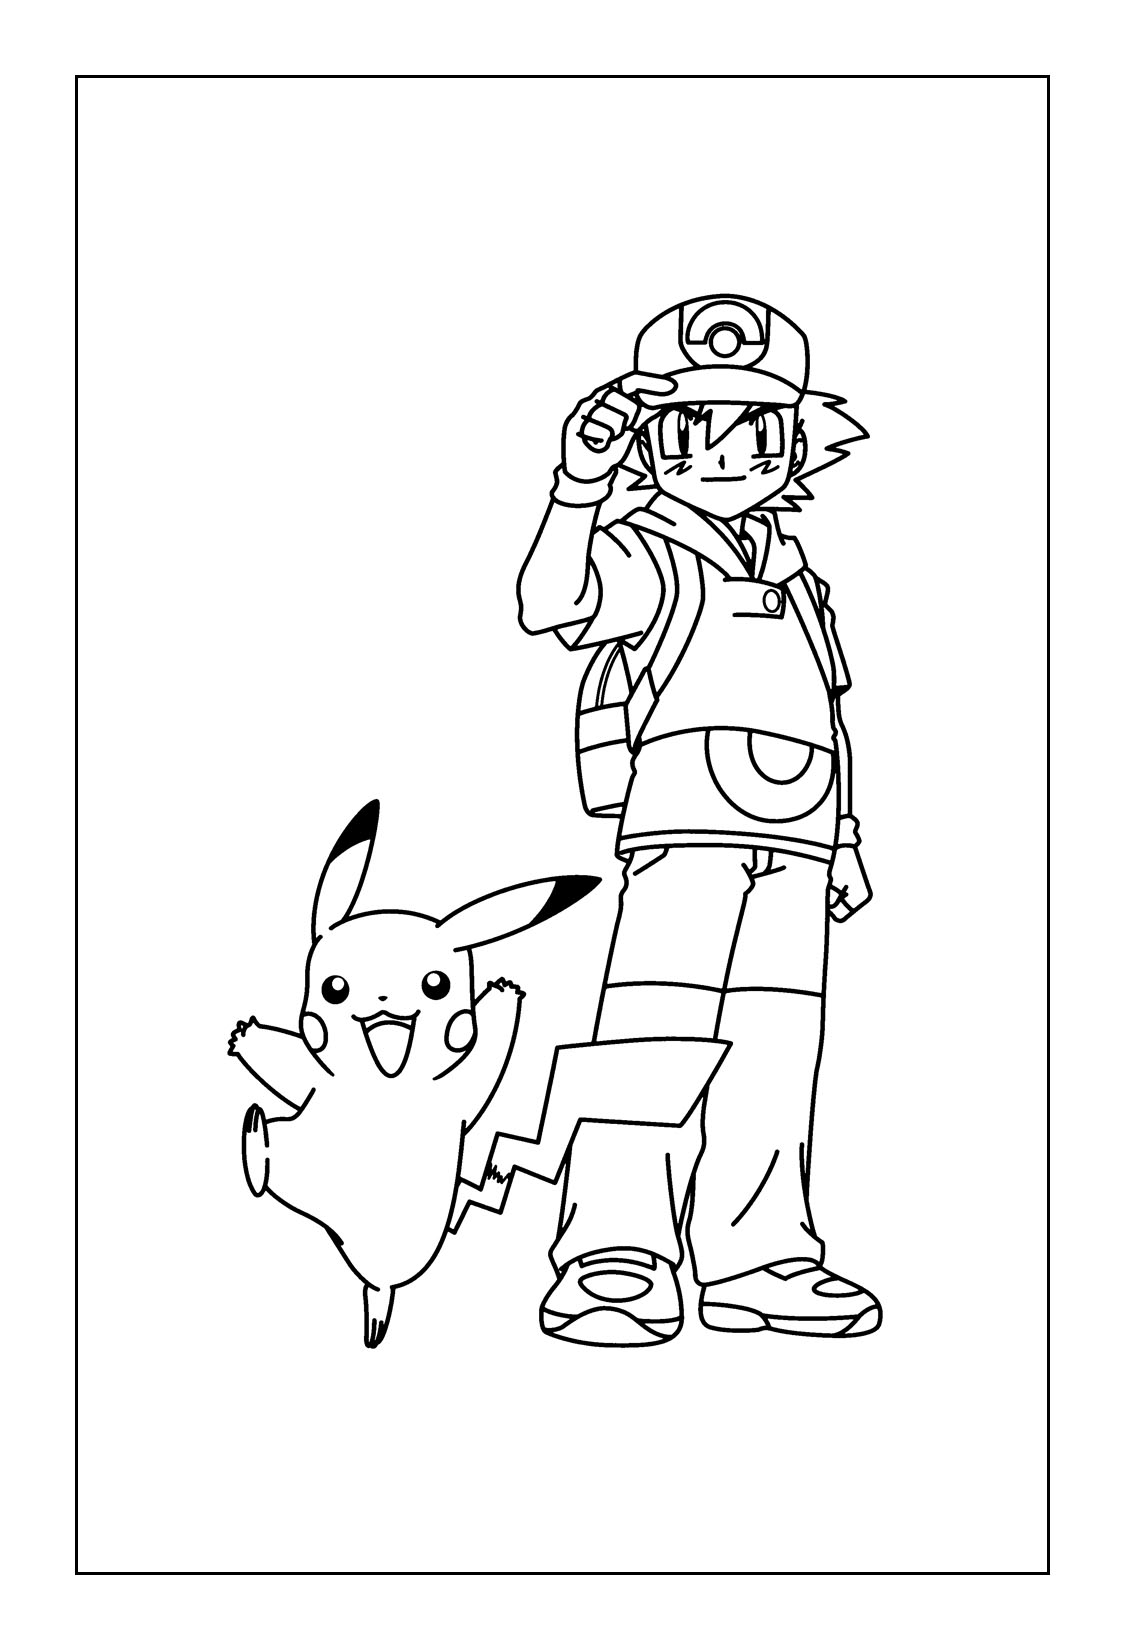 Free Printable Pikachu Coloring Pages - Ash and Pikachu